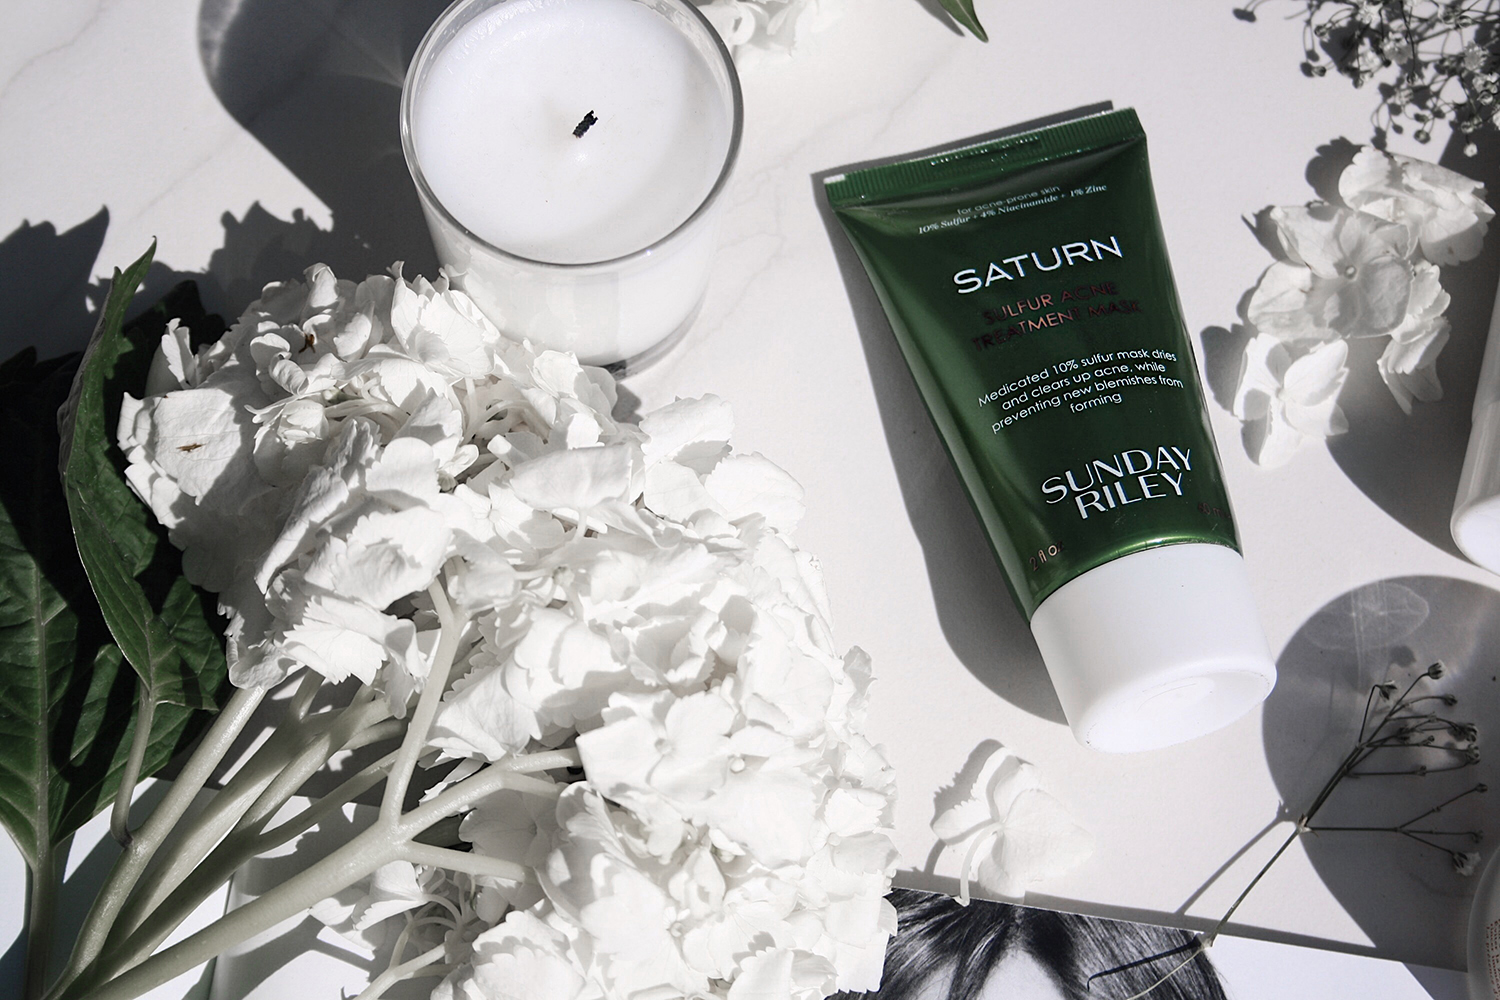 Sunday Riley Saturn Sulfur Mask Review